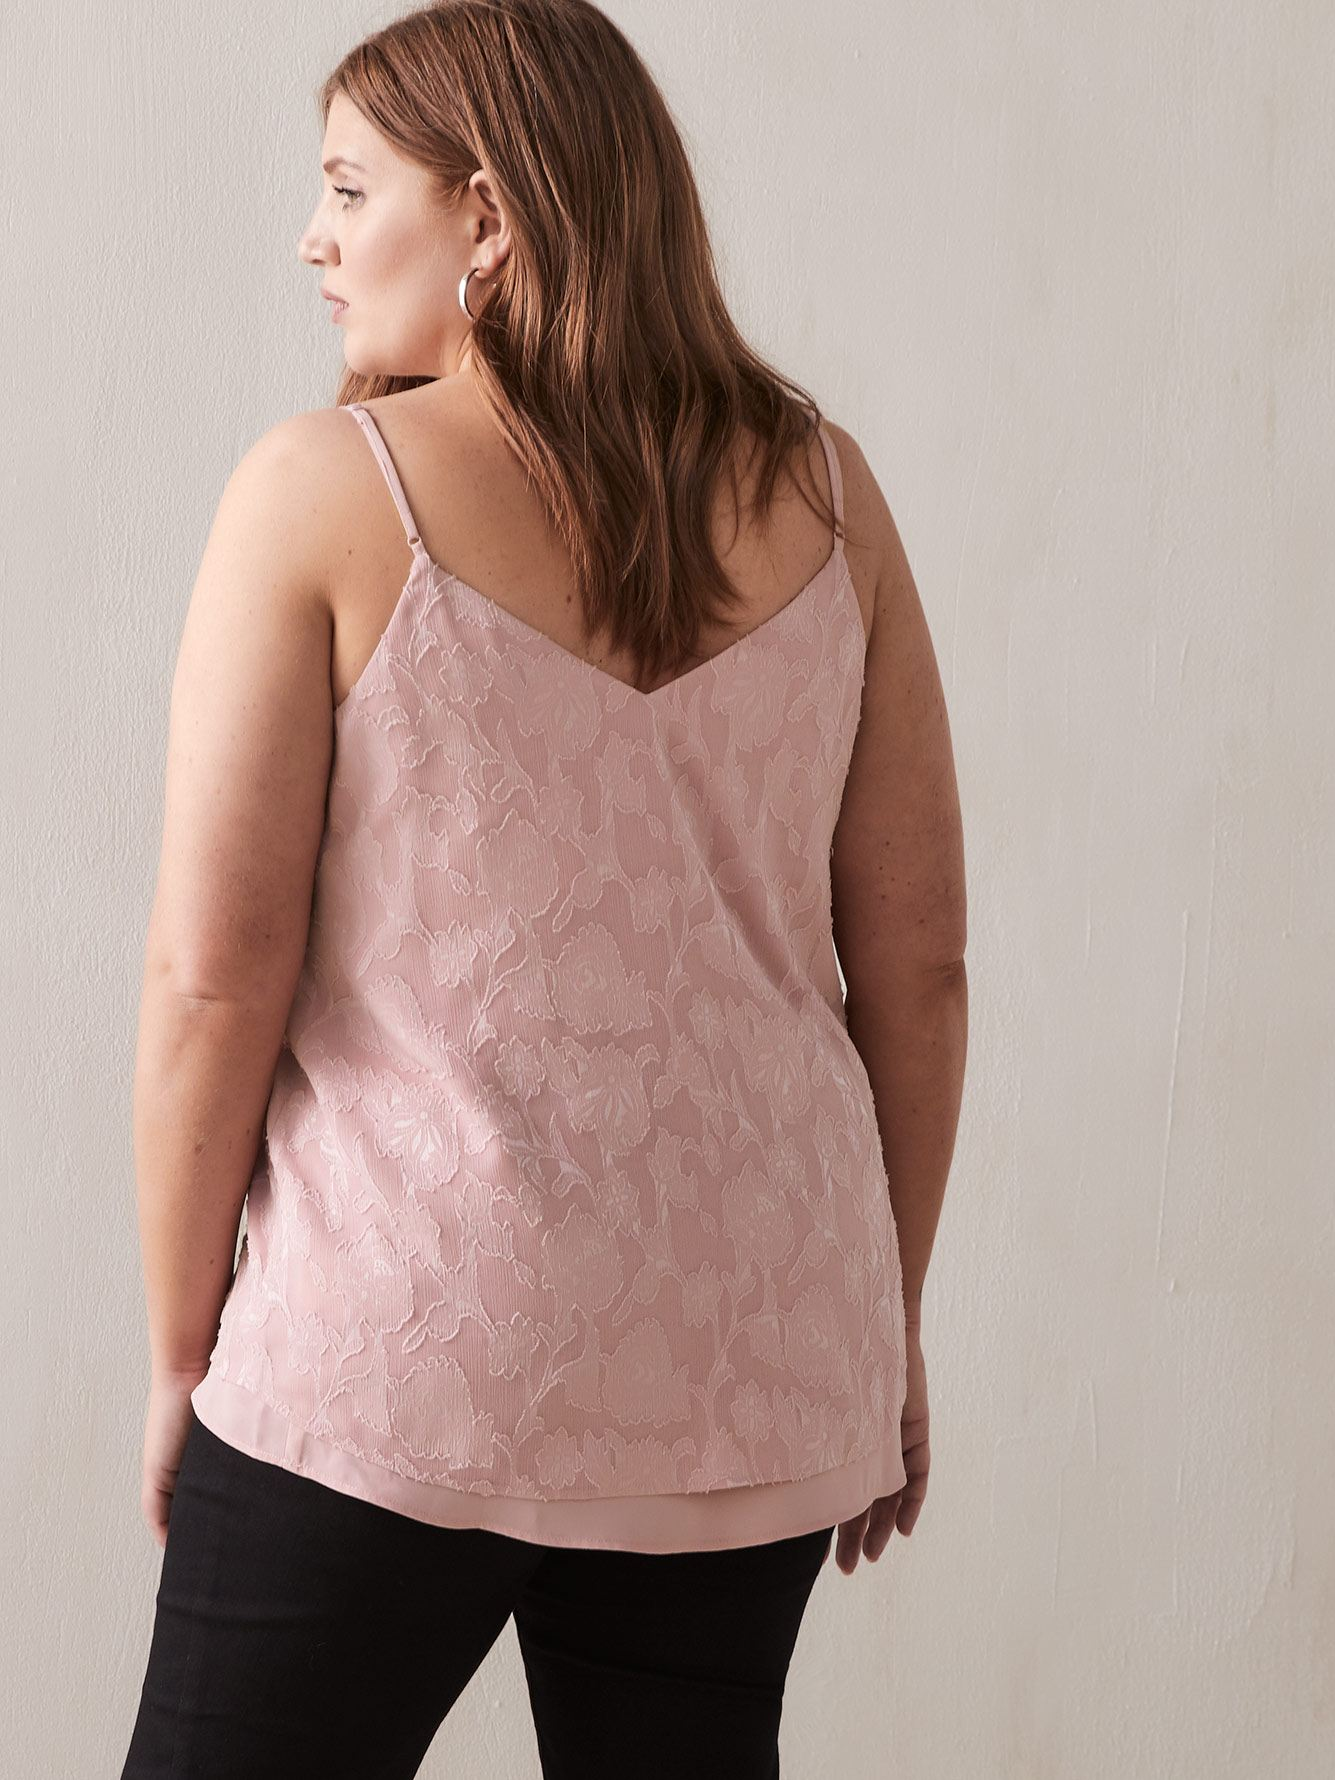 Double Layer V-Neck Camisole